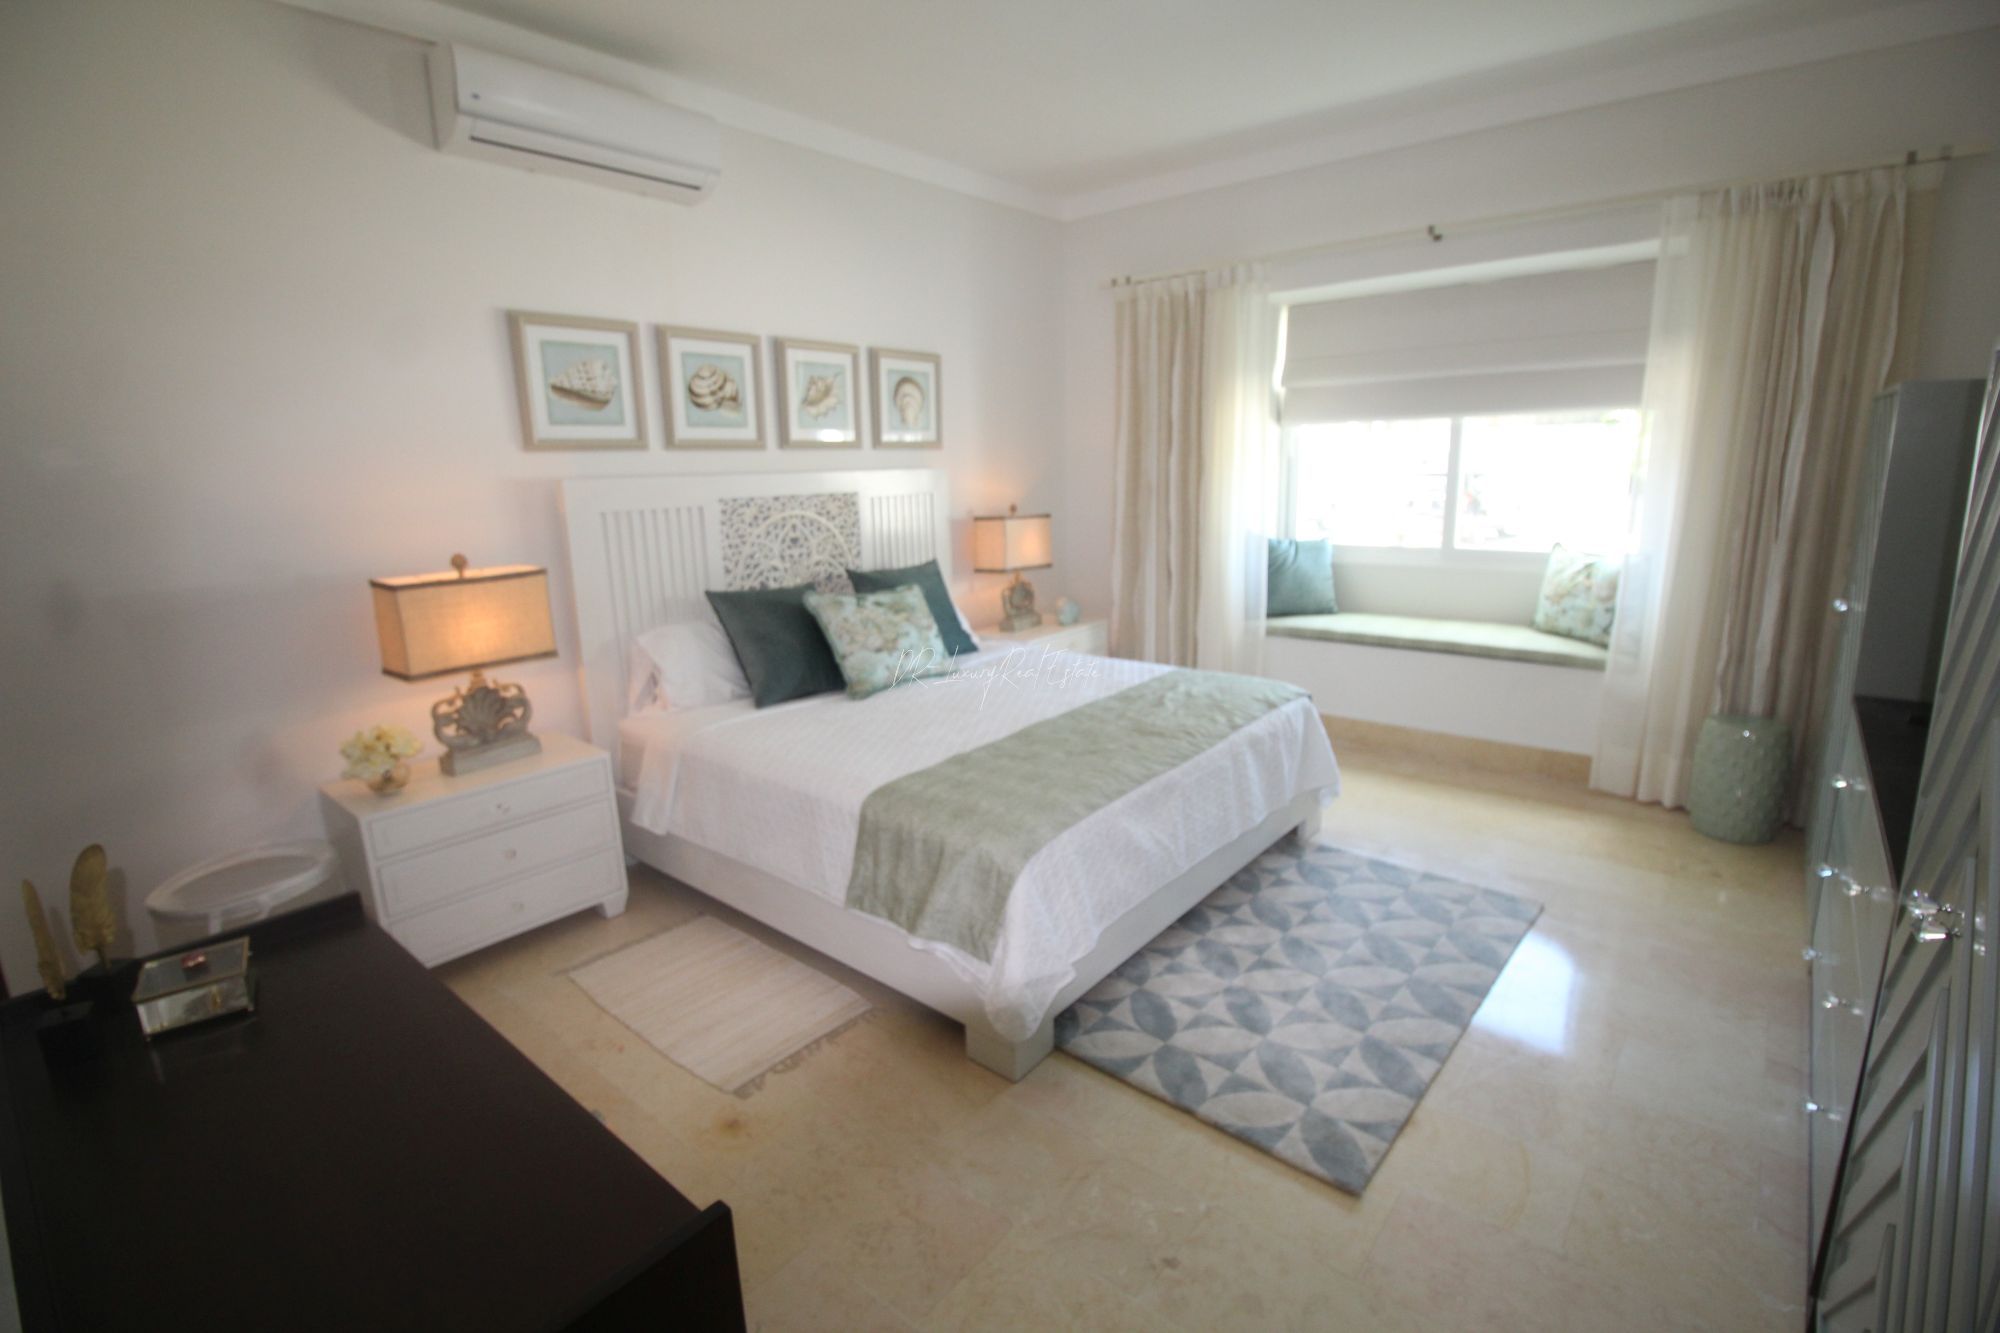 #5 Beautiful modern beachfront condo with 3 bedrooms